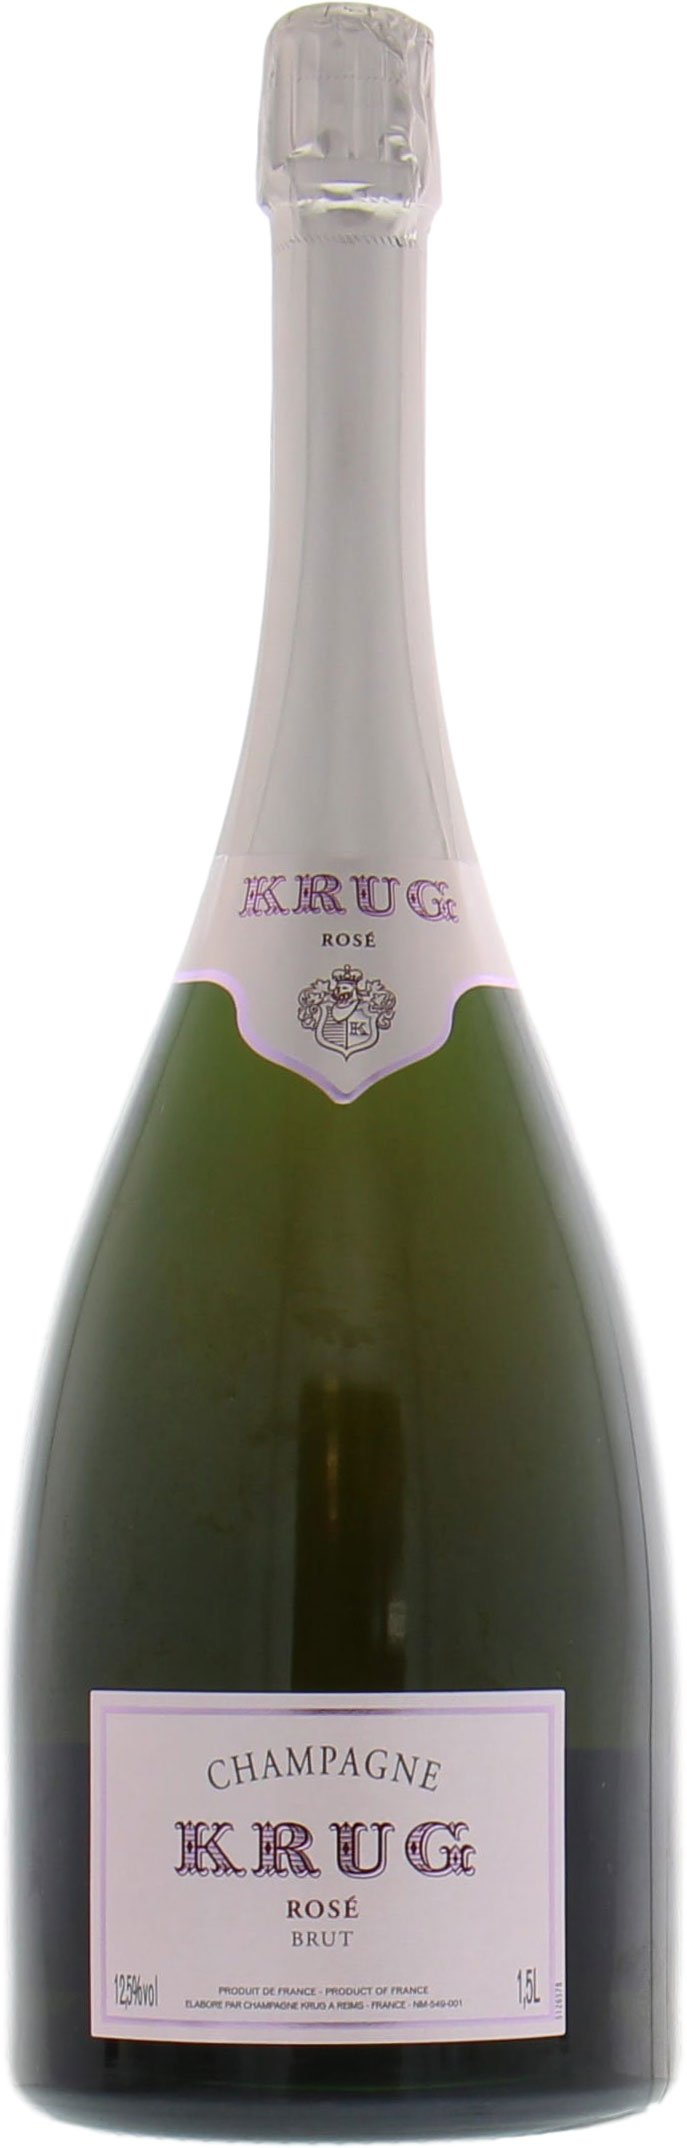 Krug - Rose NV